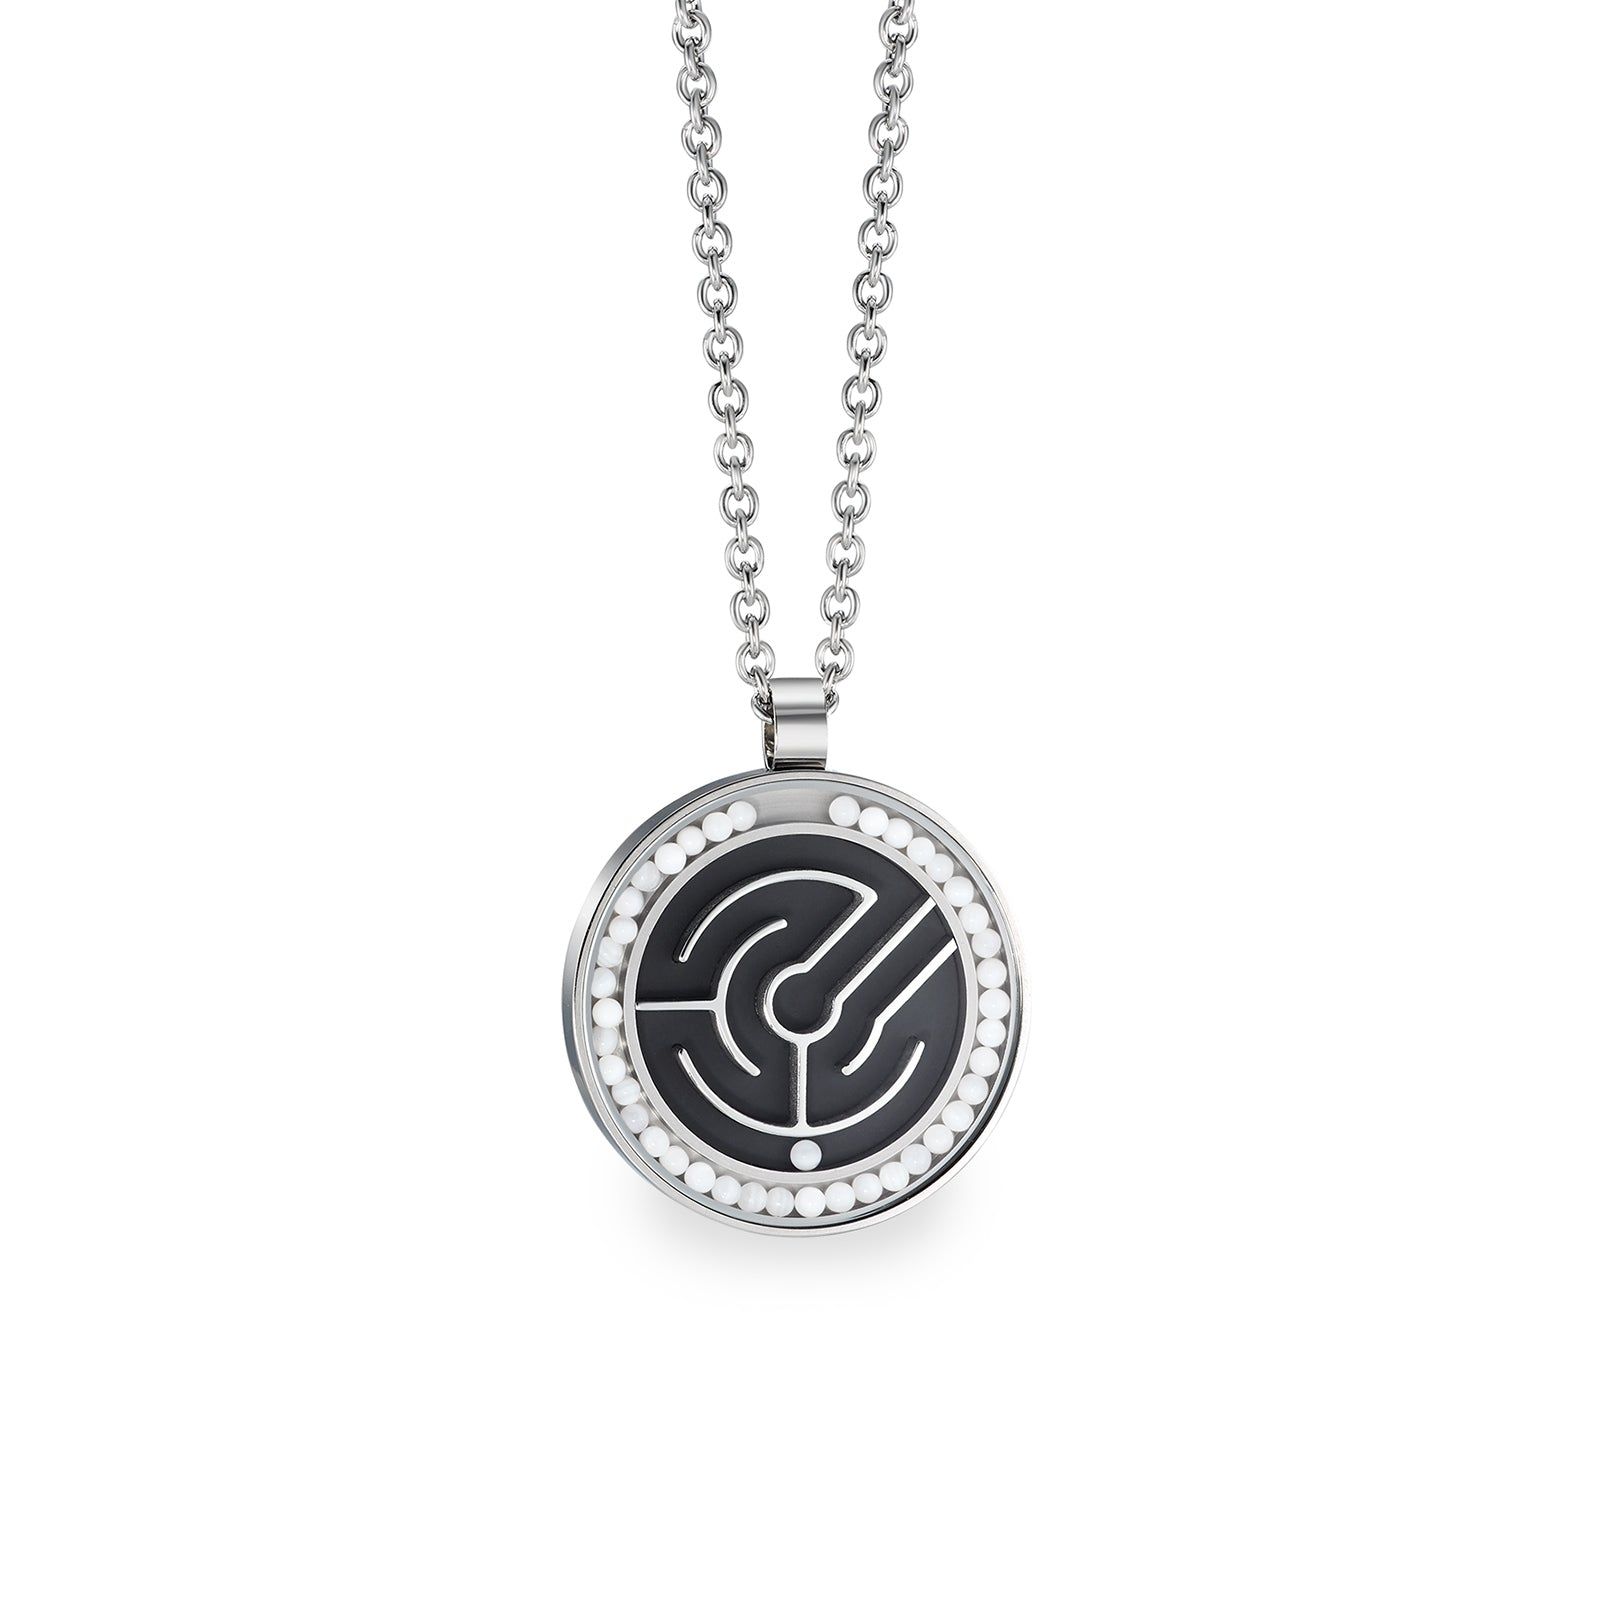 79067-01 TeNo Stainless Steel Pendant Necklace